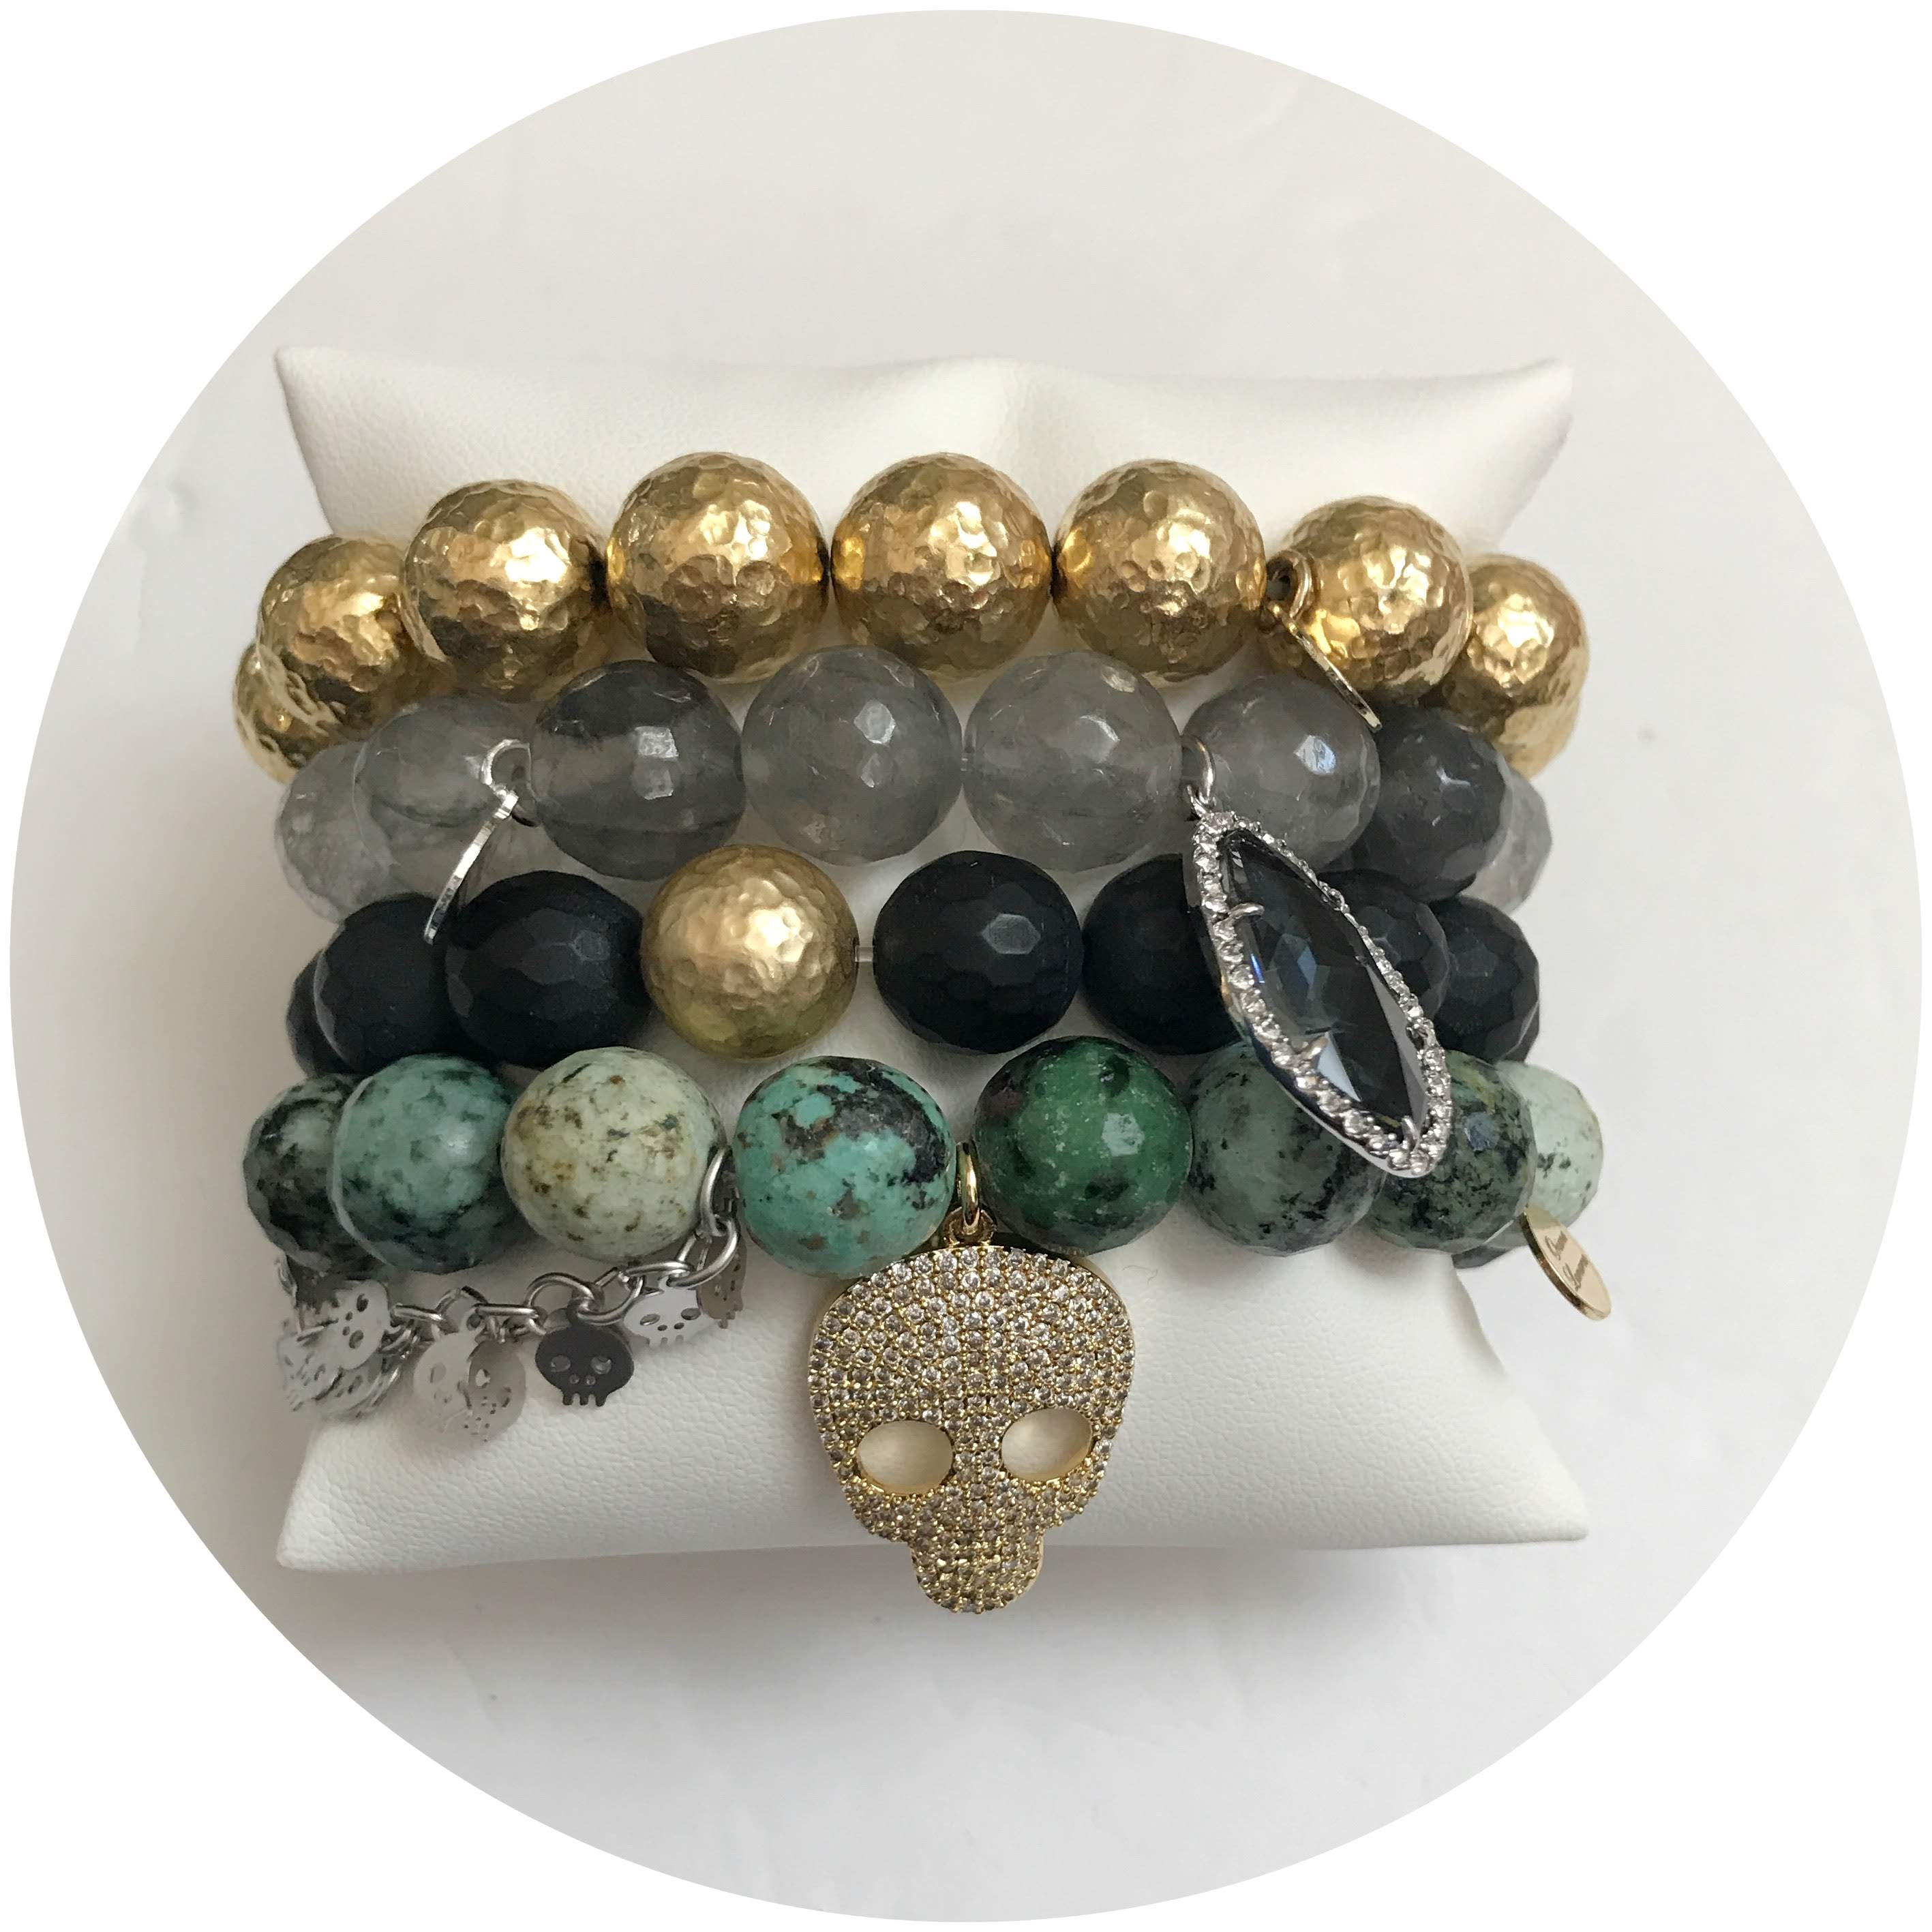 Gold Grunge Armparty - Oriana Lamarca LLC